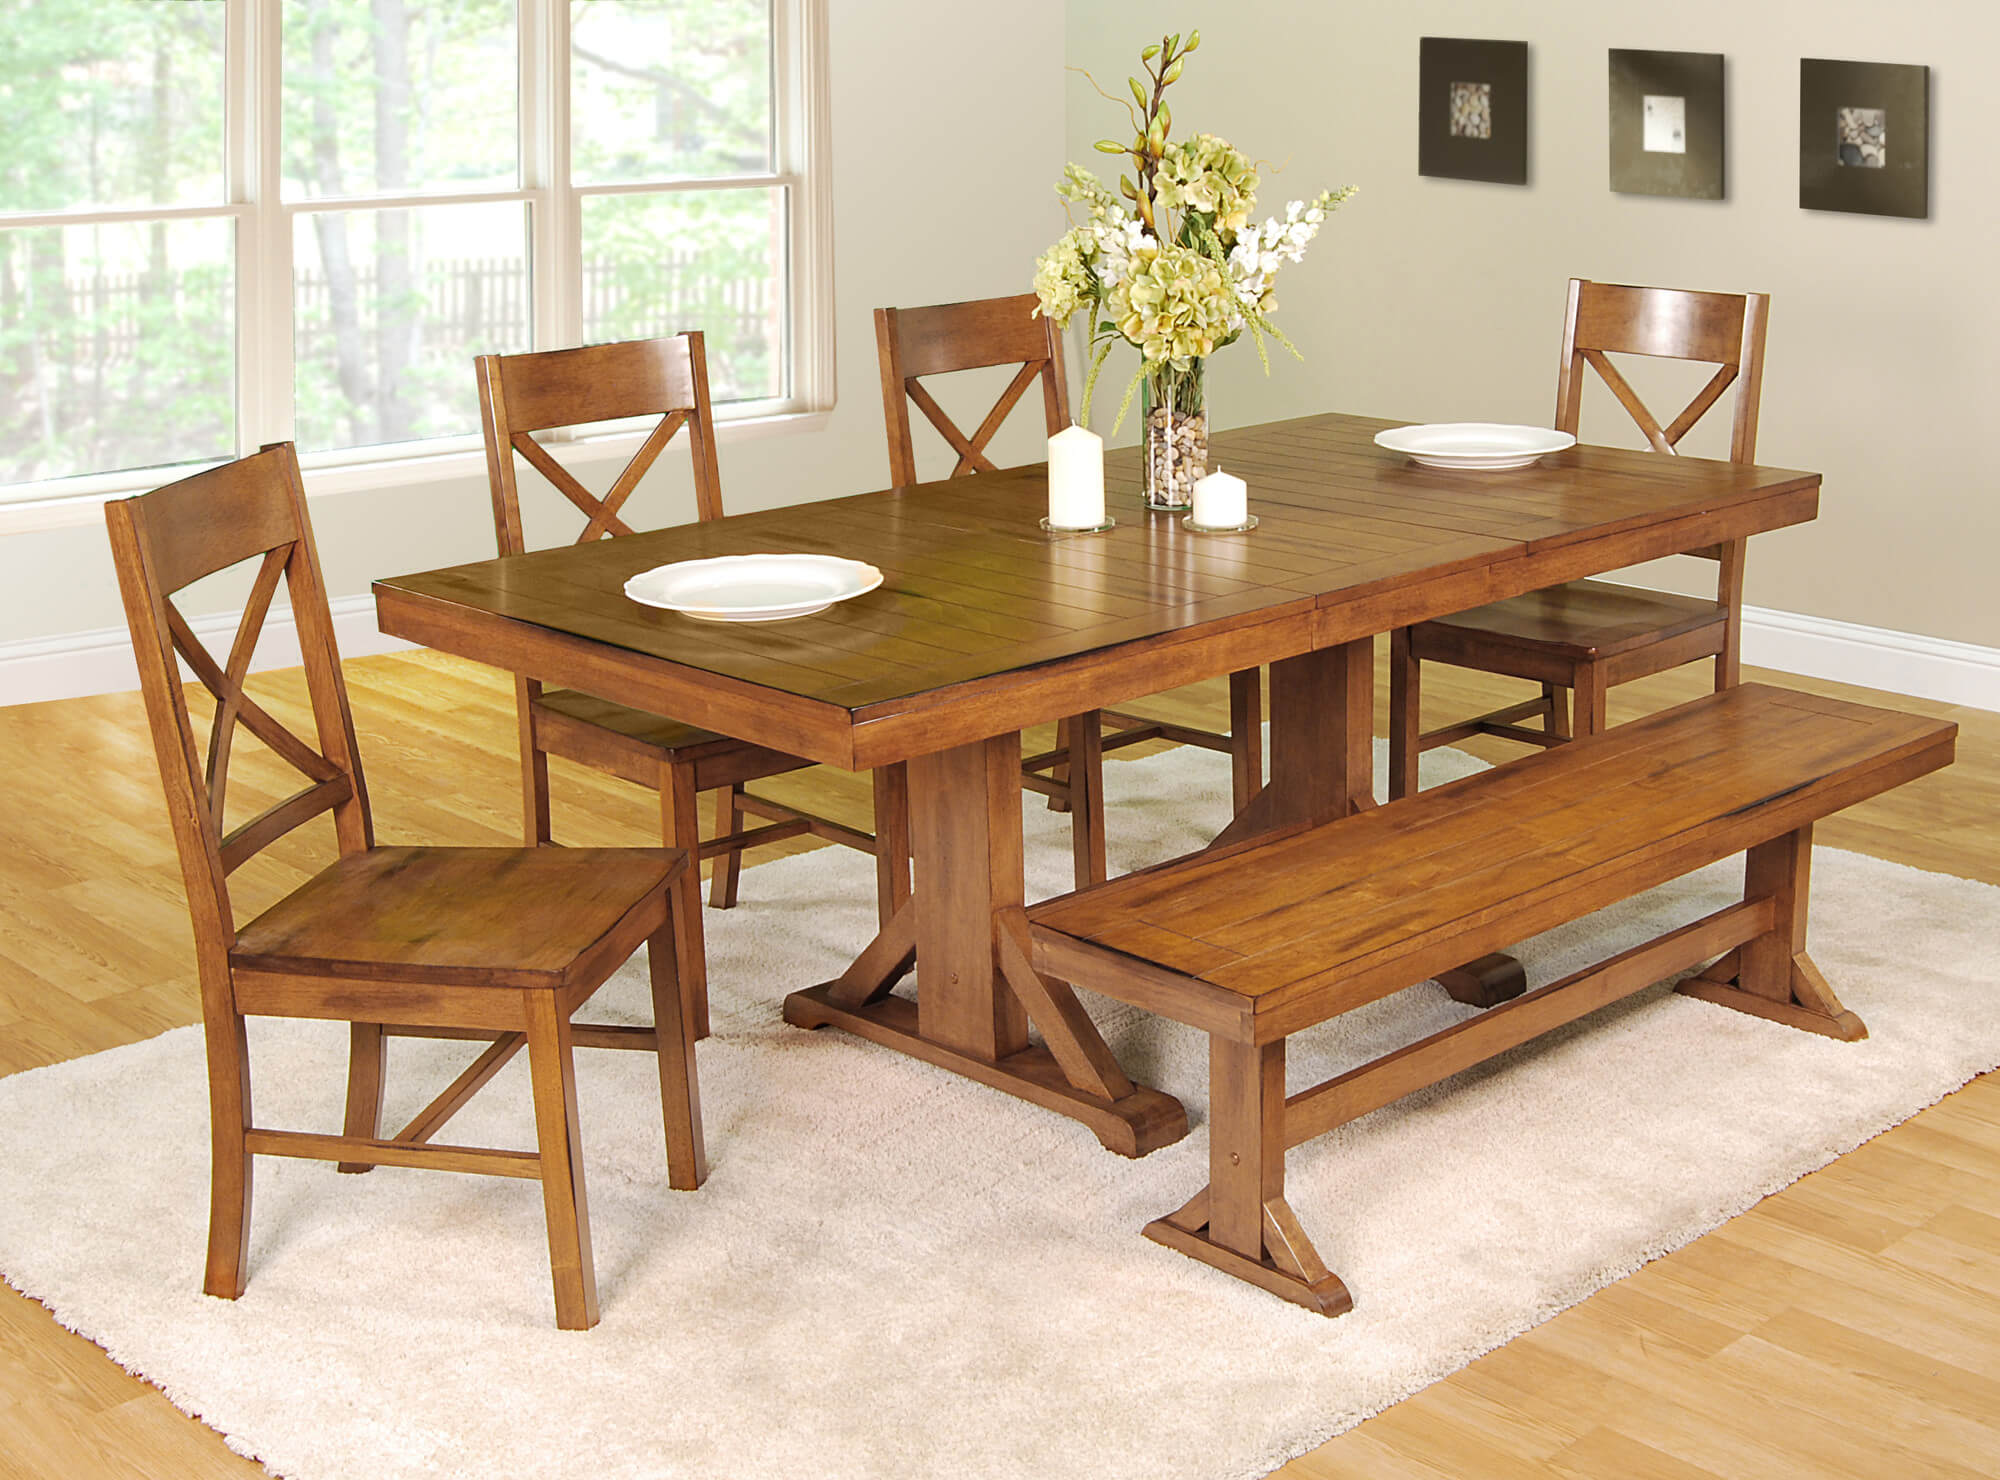 dining room sets bench seating country kitchen table sets This dining room set with bench is going for the antique look with an antique brown